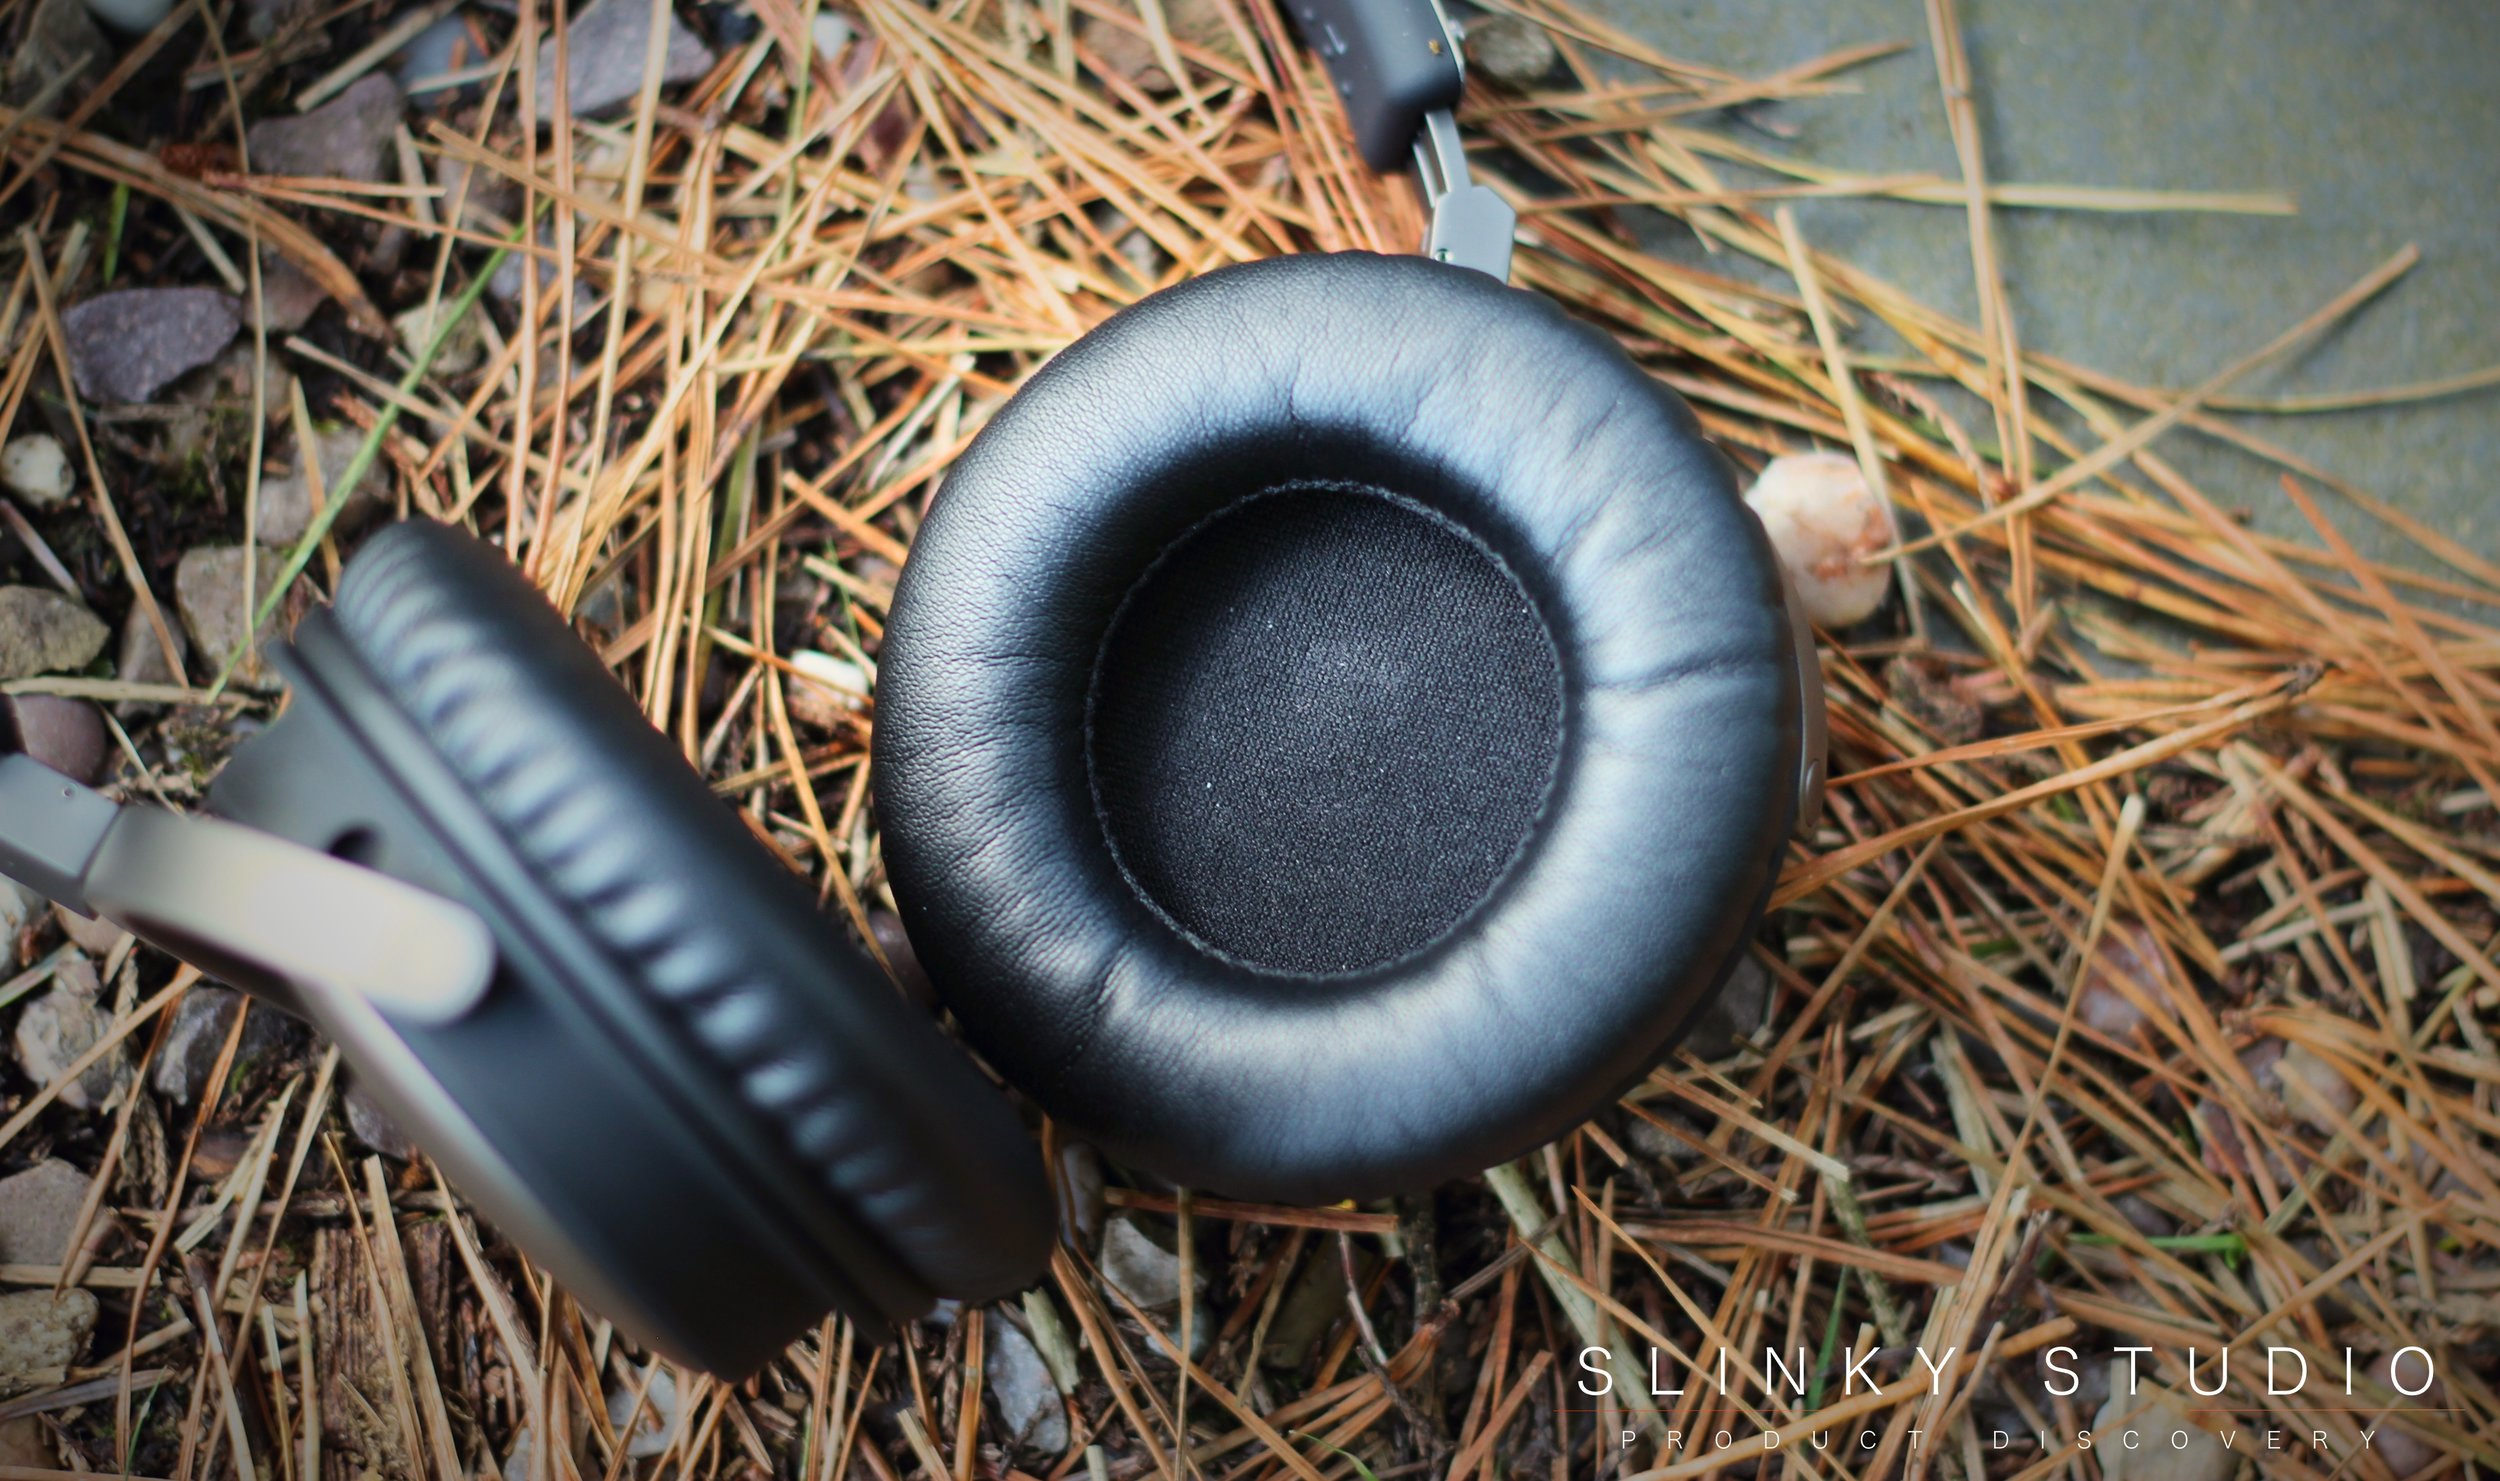 SoundMagic Vento P55 Headphones Pad Cushions.jpg